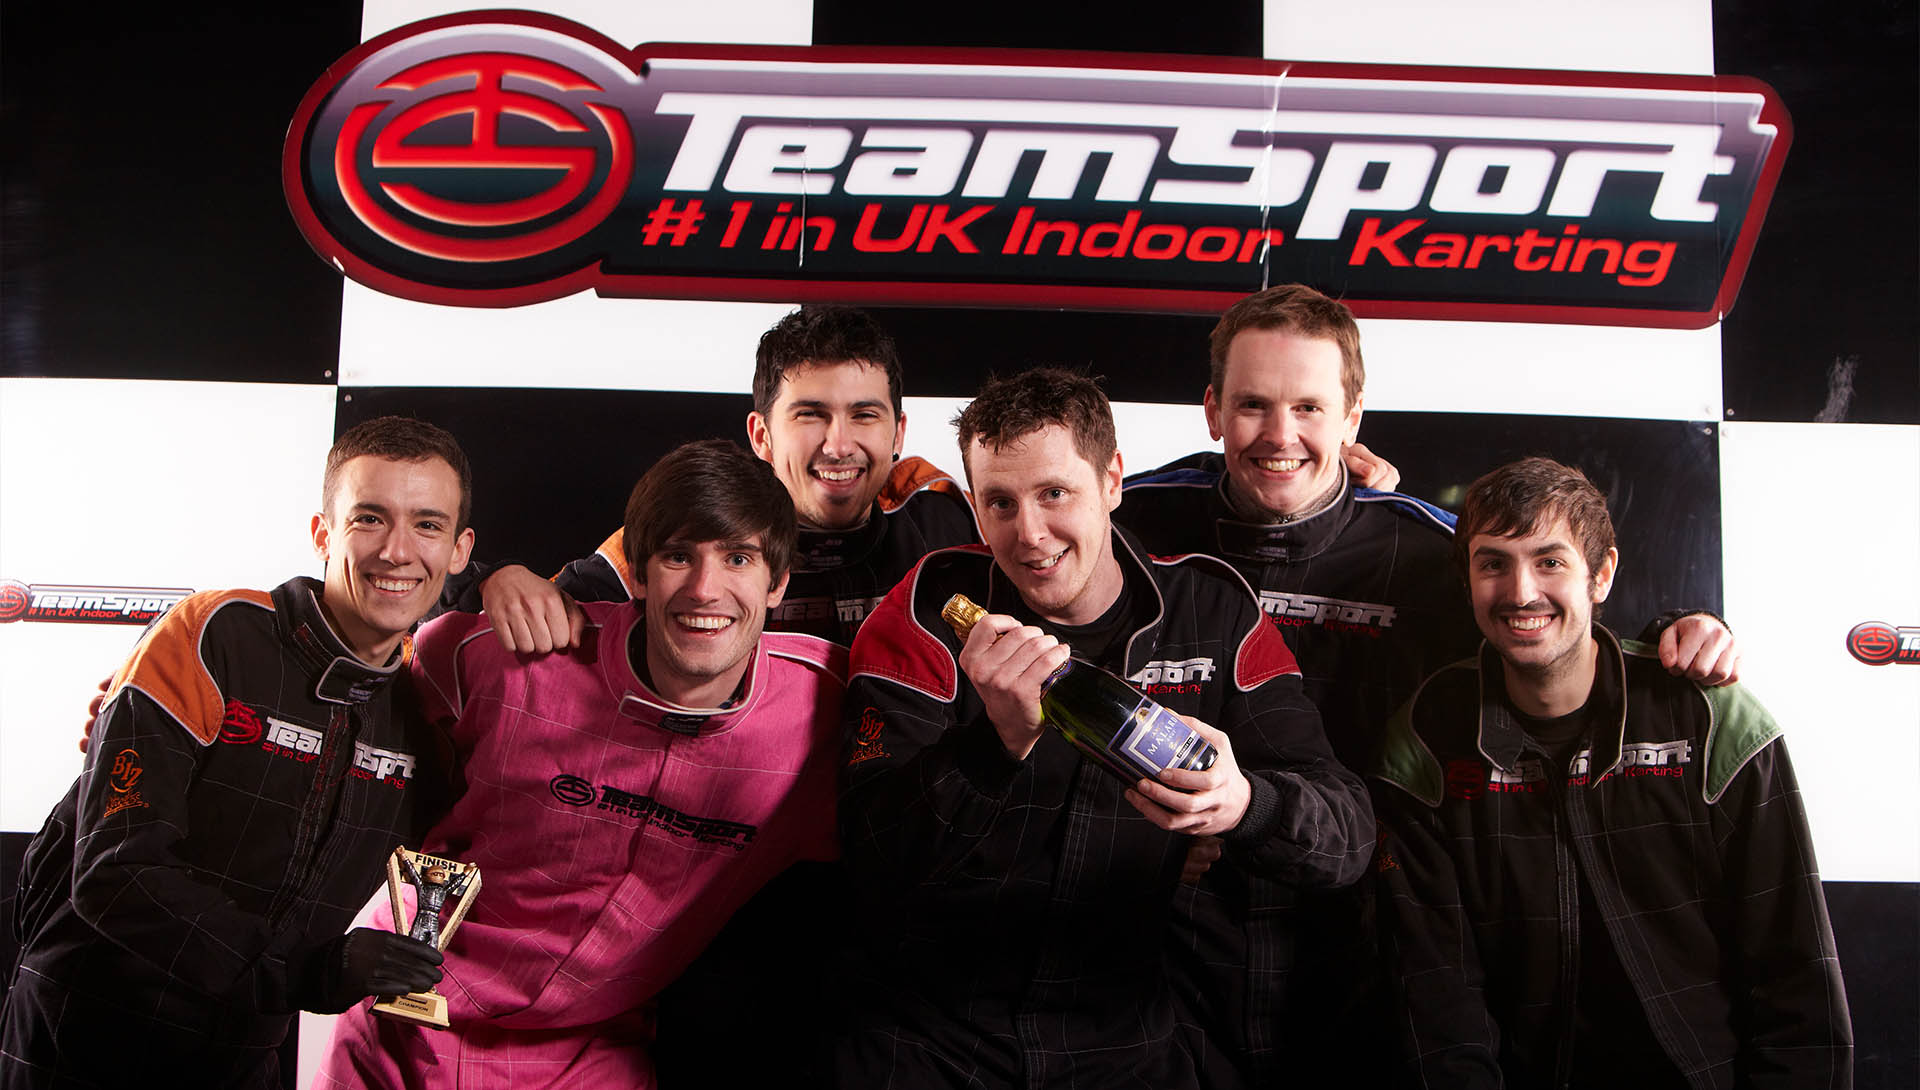 Stag Do Karting Packages Teamsport Go Karting